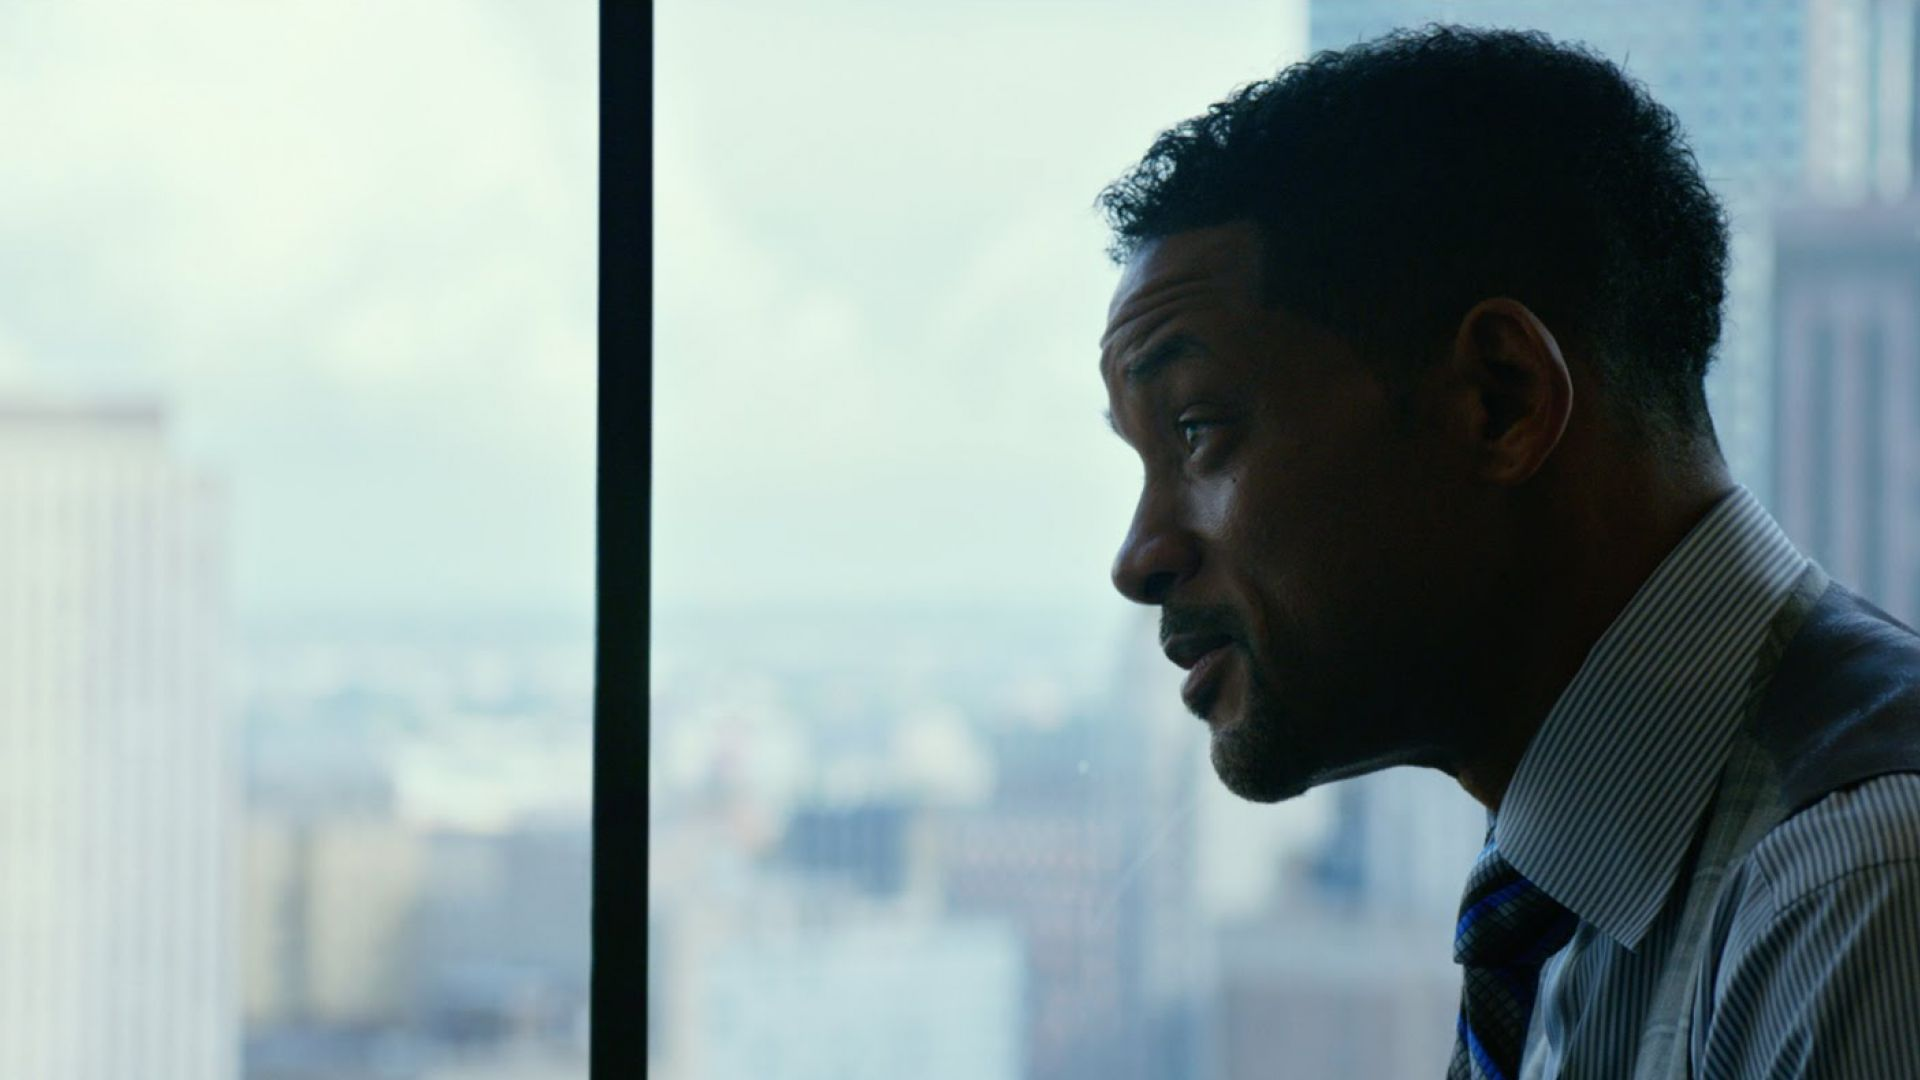 Second Official Trailer for 'Focus'